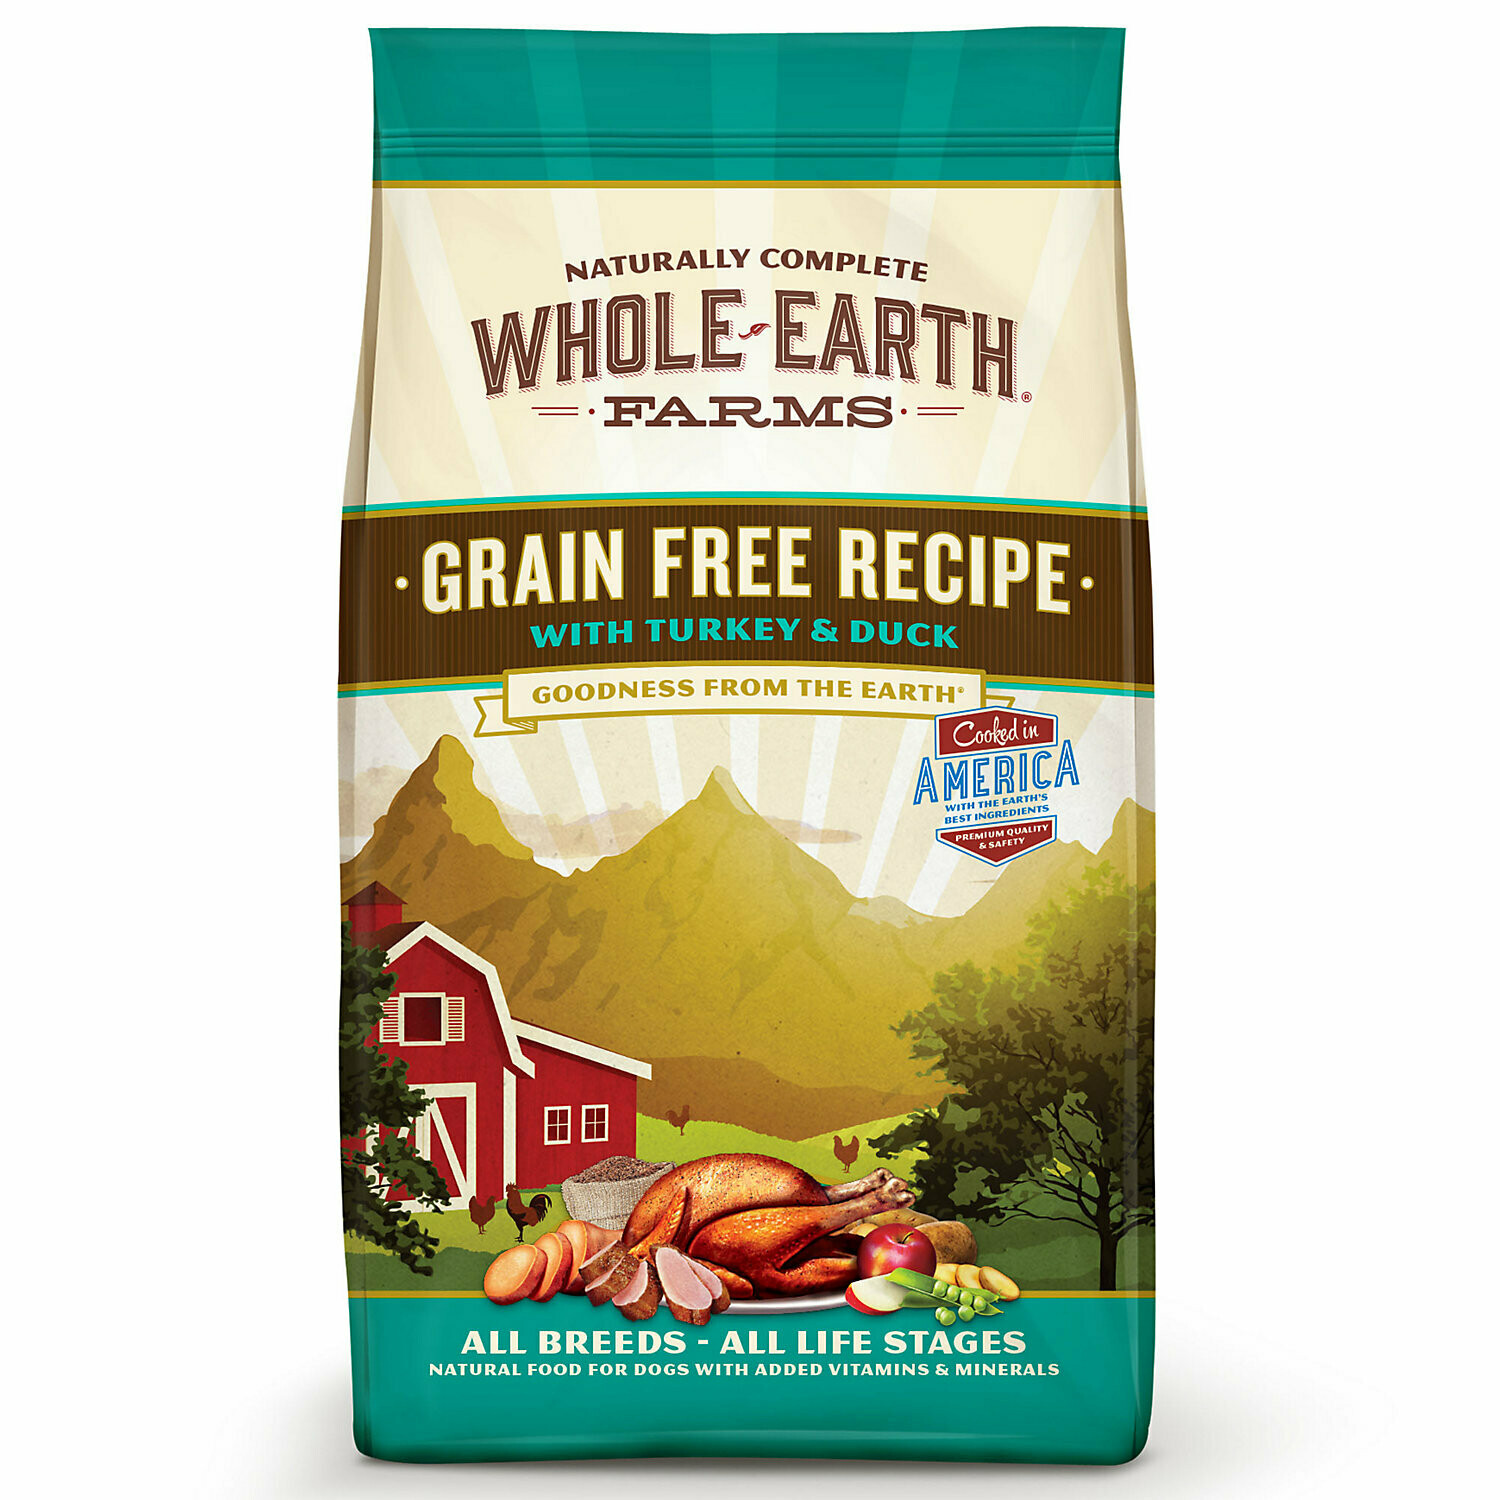 Whole Earth Farms Grain-Free Turkey Duck Recipe dry Dog Food 4 lbs (10/19) (A.J3)